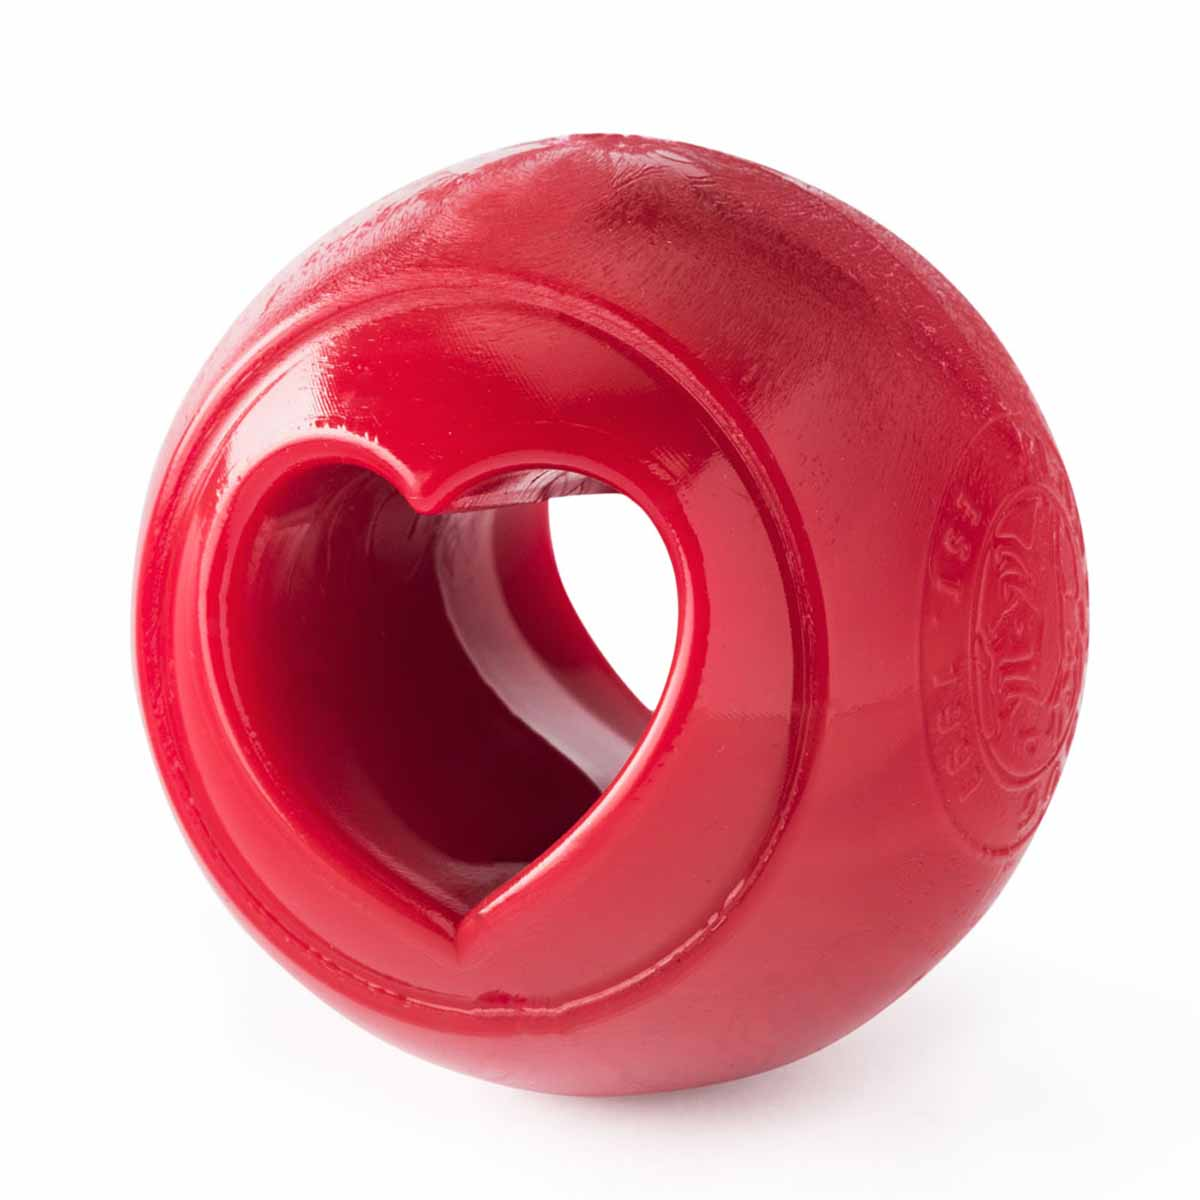 Orbee-Tuff Nooks Ball Dog Toy by Planet Dog - Love